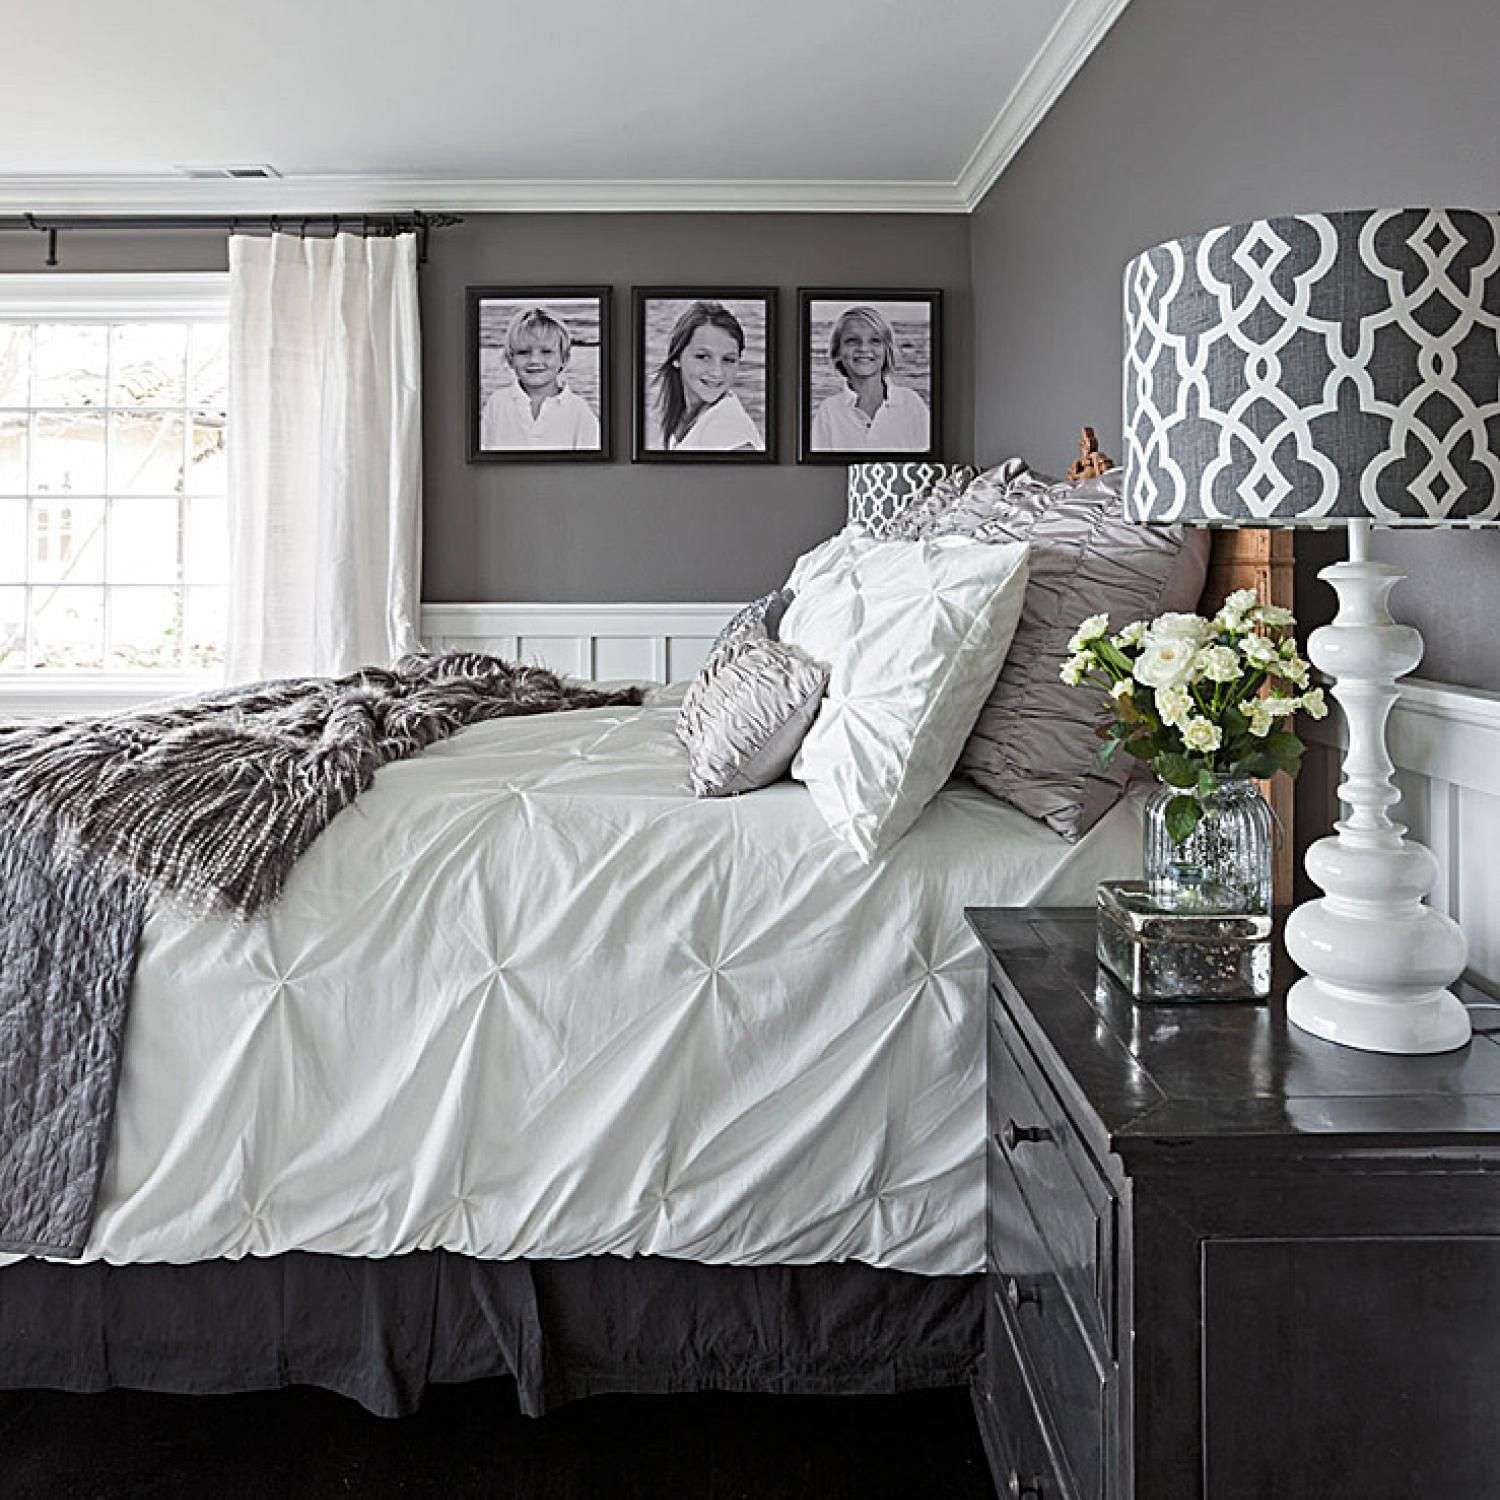 Black and white bedrooms with a splash of color - Gorgeous Gray And White Bedrooms Bedroom Colorsgray Bedroom Black